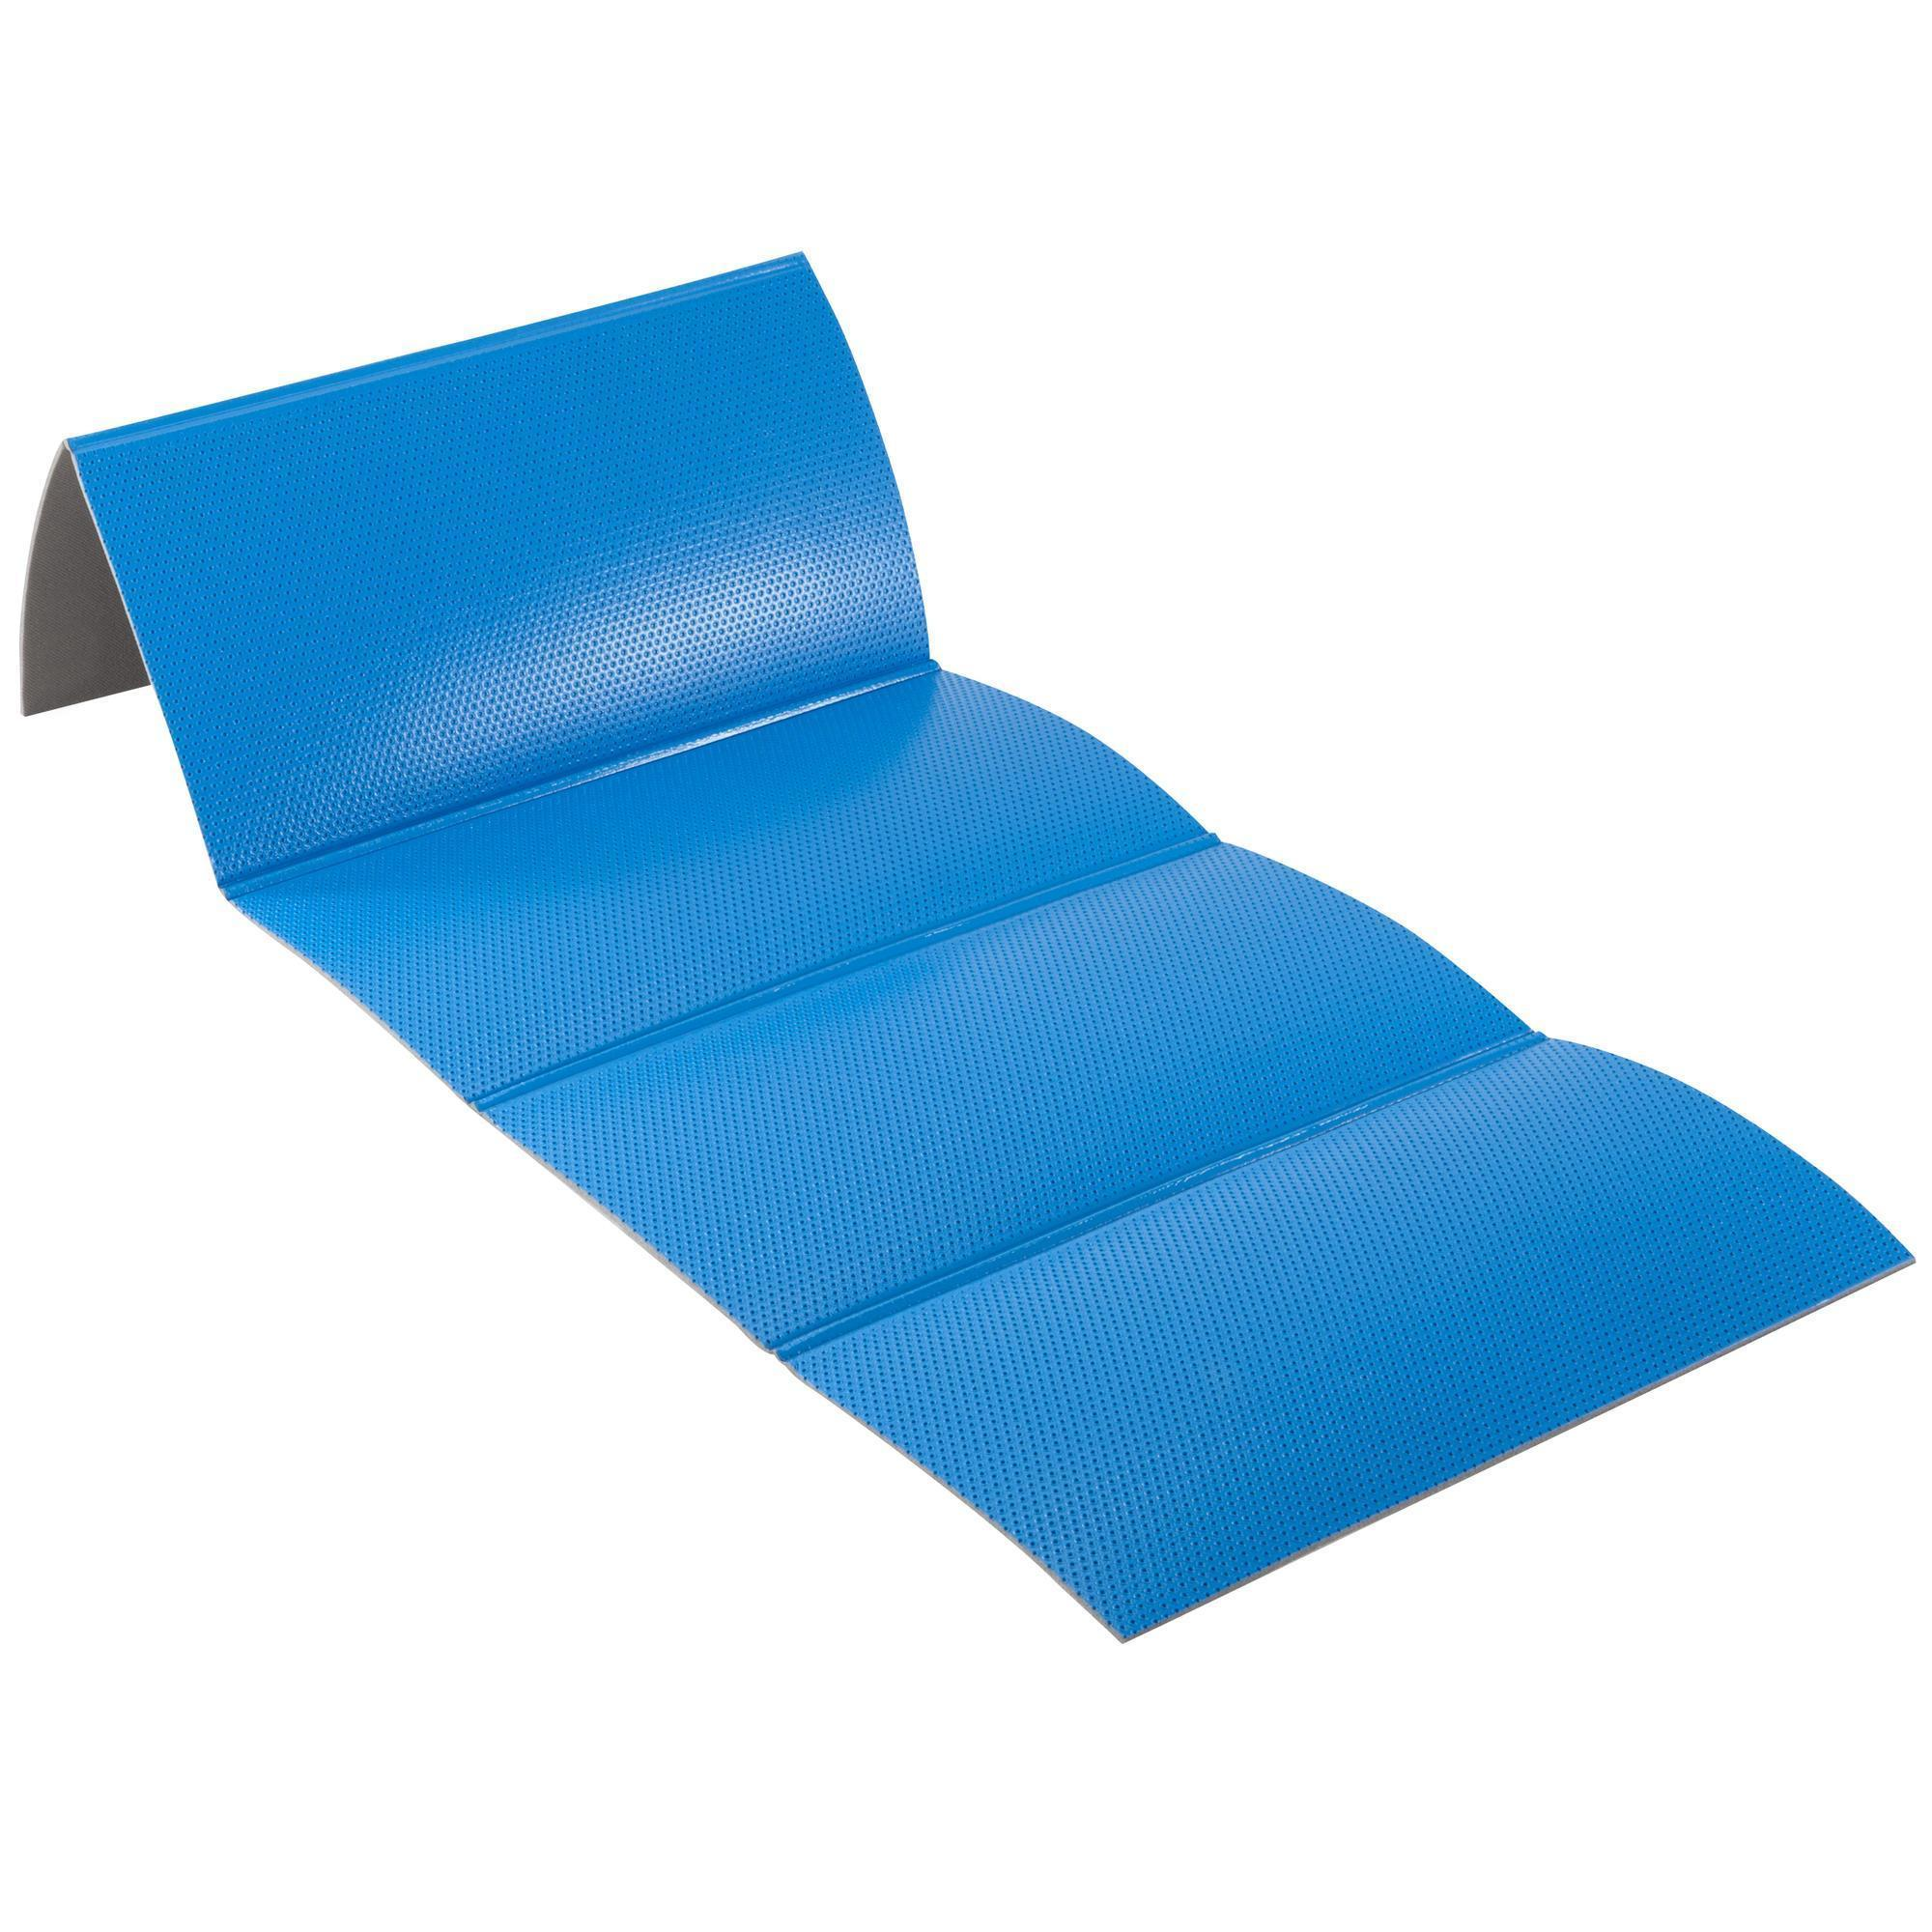 tapis de gym pliable 520 bleu domyos by decathlon. Black Bedroom Furniture Sets. Home Design Ideas